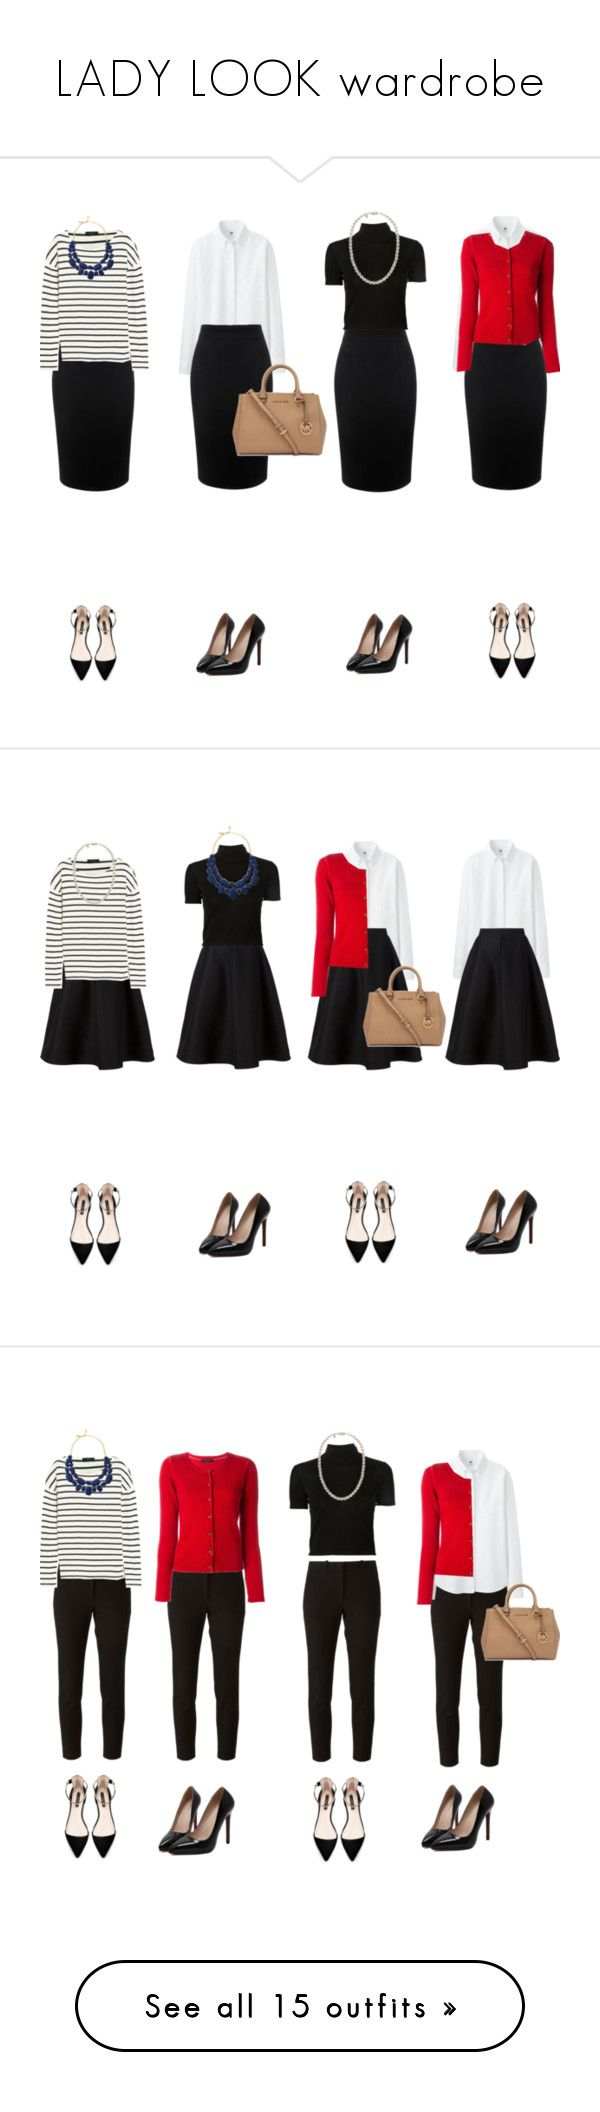 Lady look wardrobe by unmmm on polyvore featuring polyvore fashion